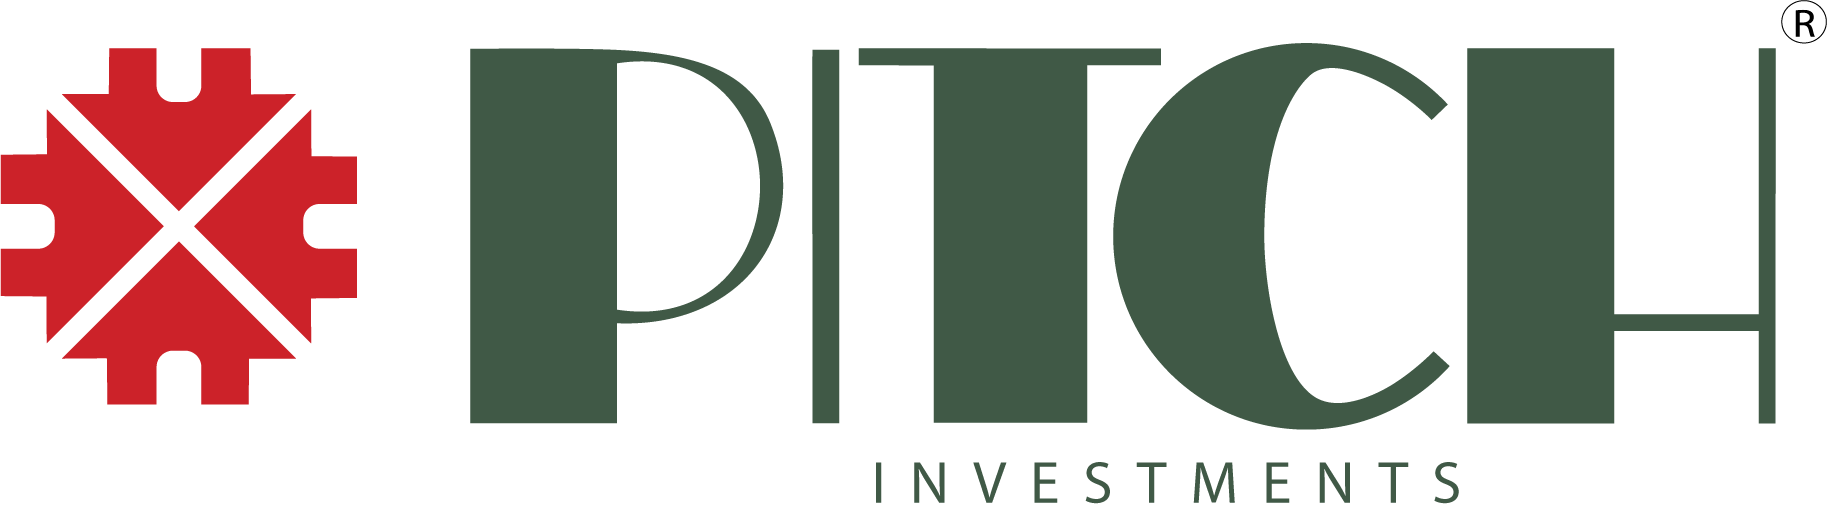 PitchInvestments